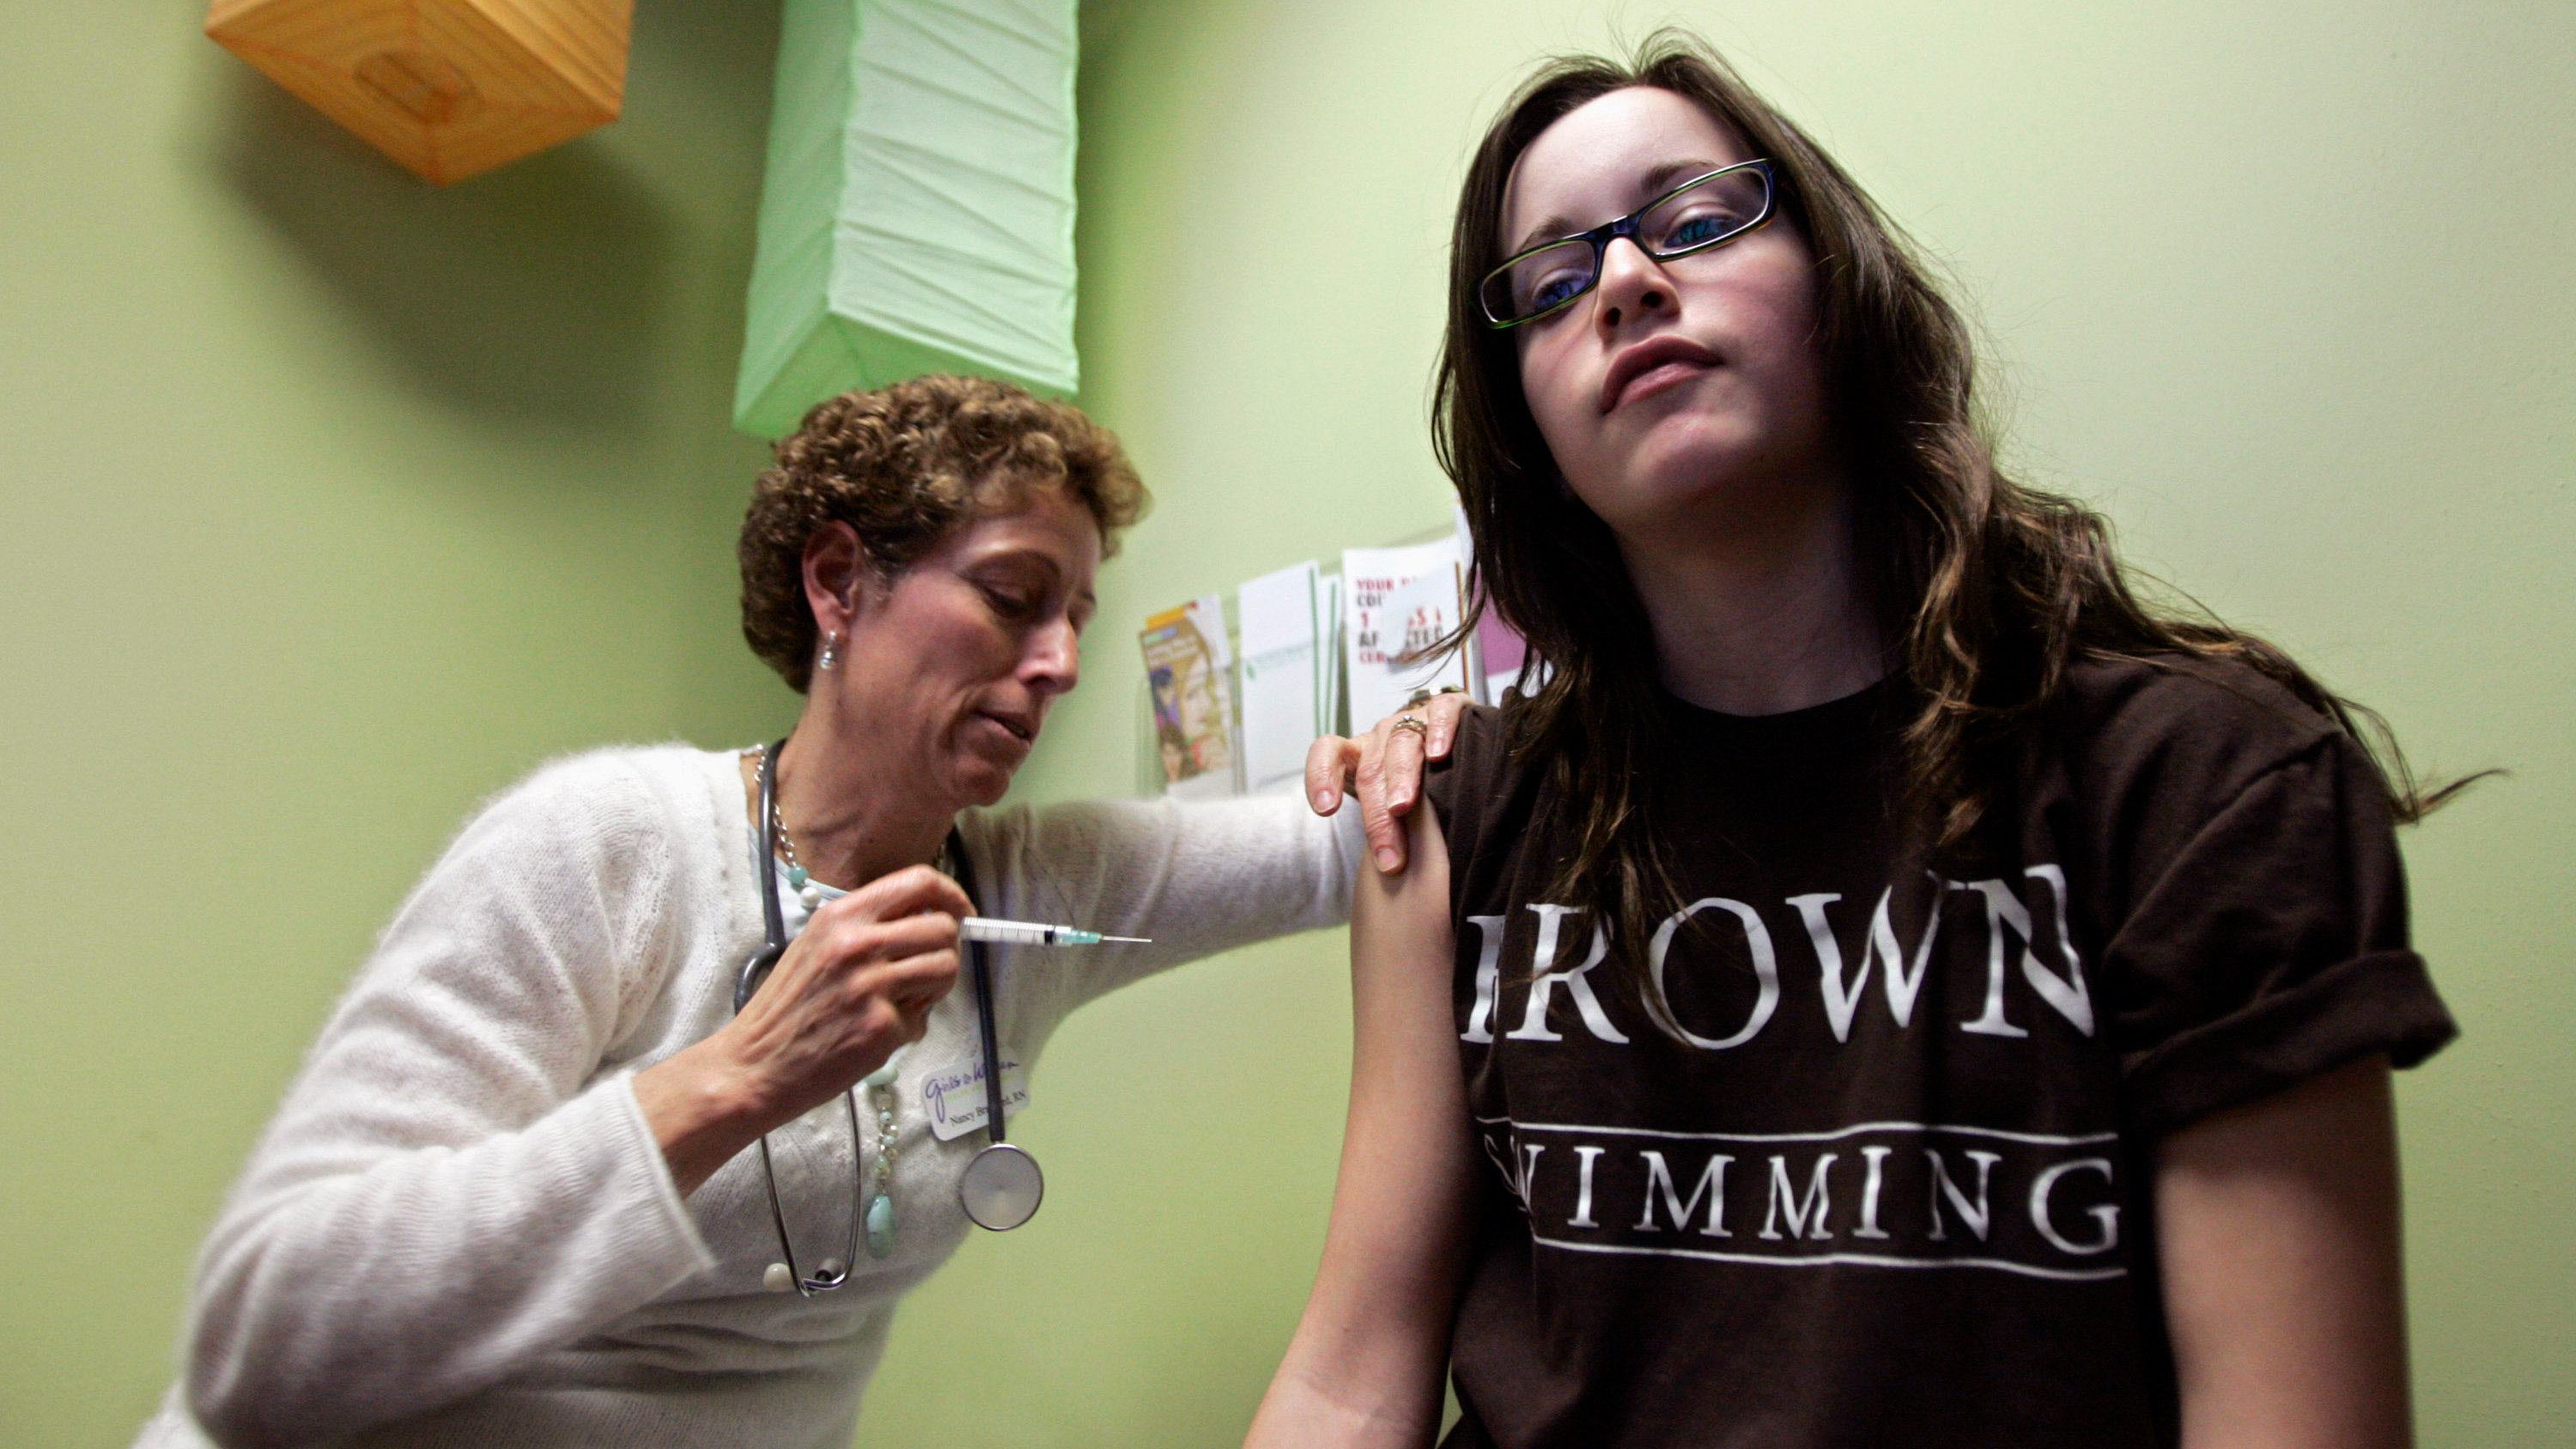 The photo shows a nurse giving a shot to a teemage girl who is looking straight at the camera.